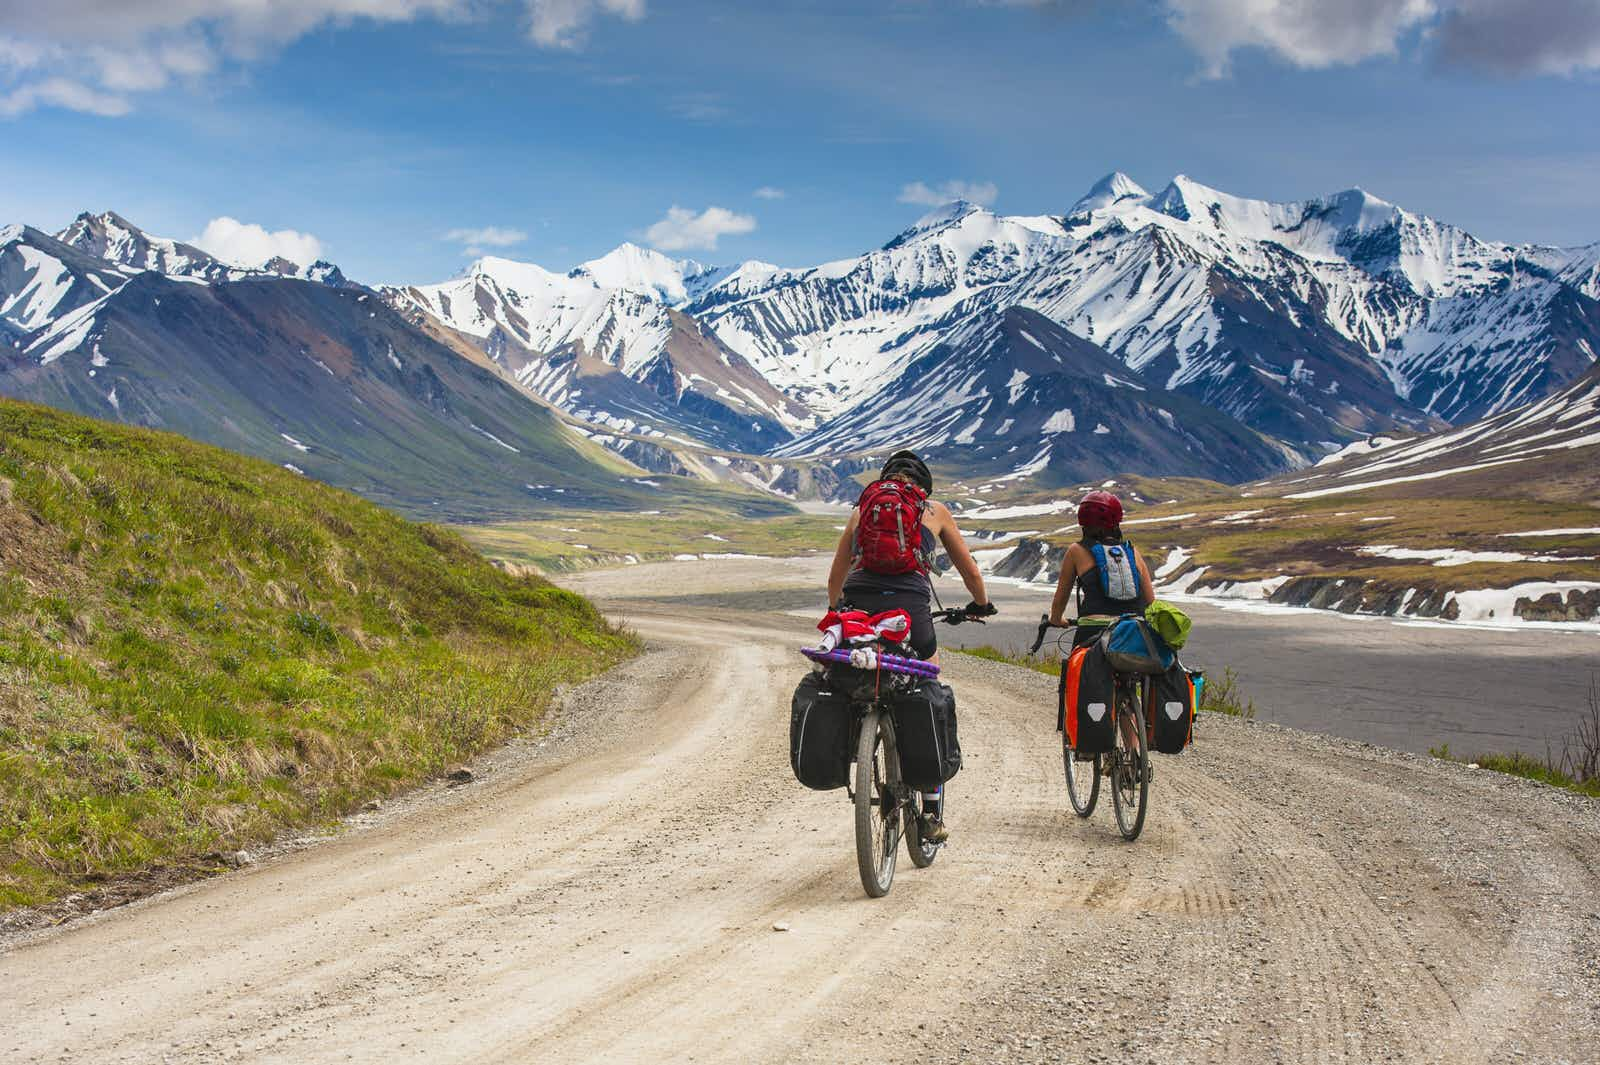 Ten tips for tackling your first bike tour